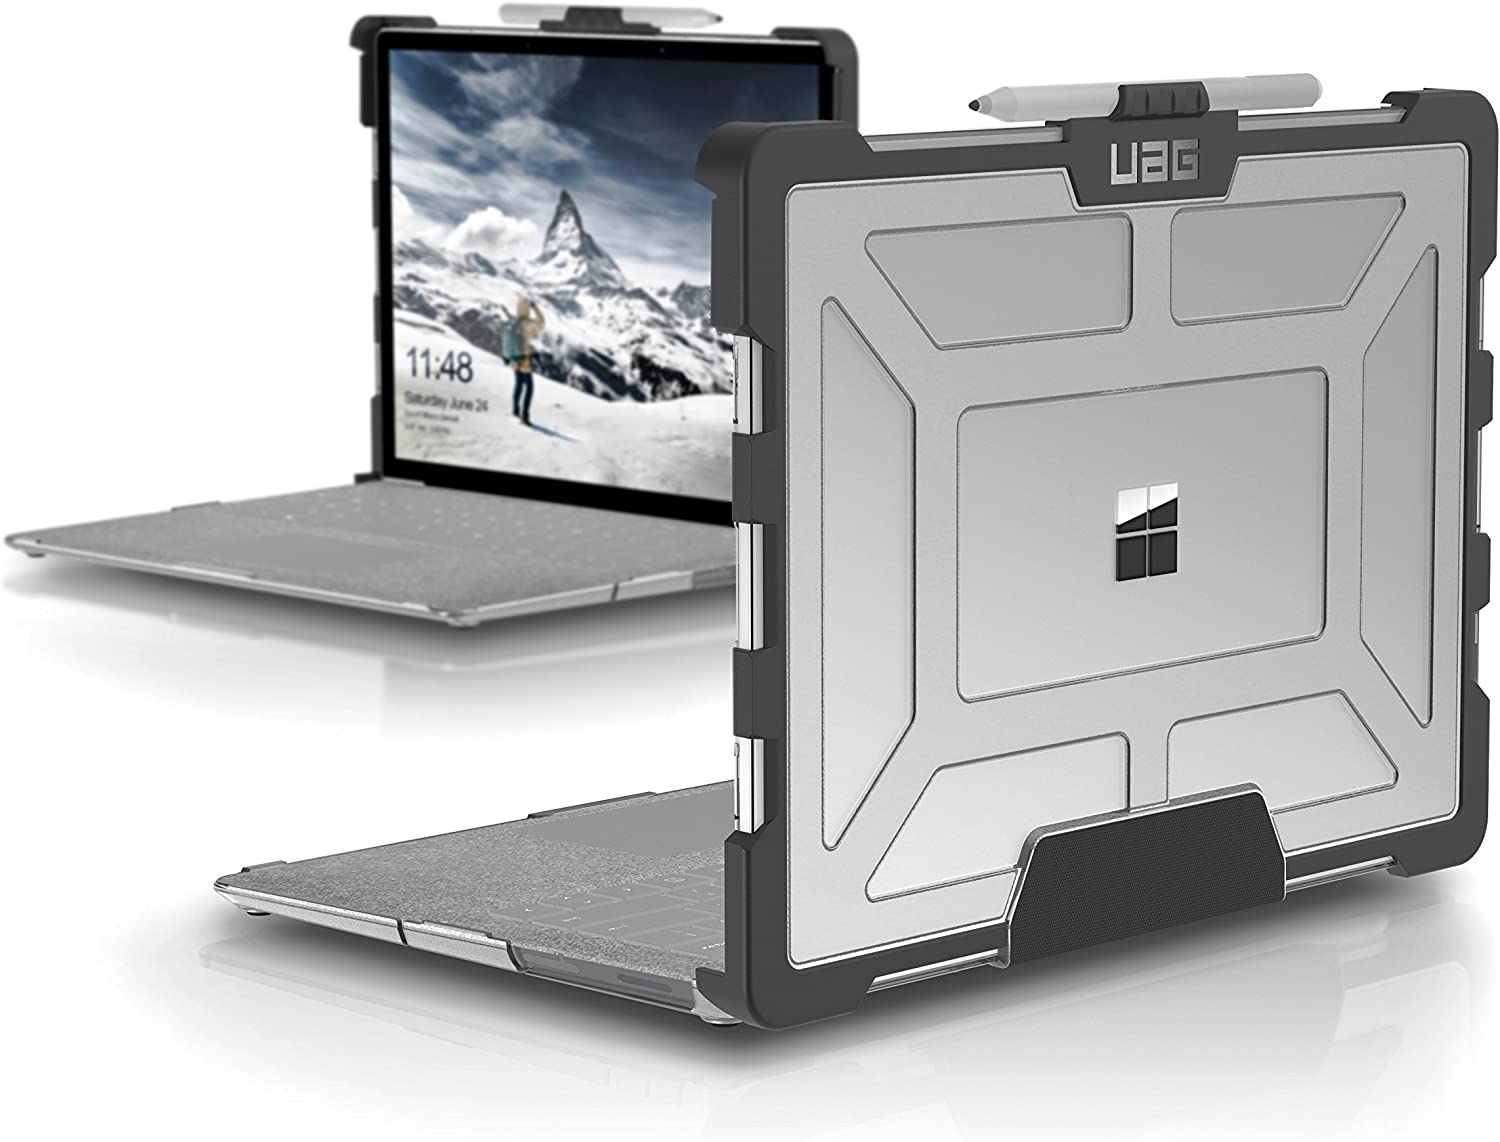 URBAN ARMOR GEAR UAG Microsoft Surface Laptop 2/Surface Laptop [13-inch Screen] Feather-Light Rugged [Ice] Military Drop Tested Laptop Case